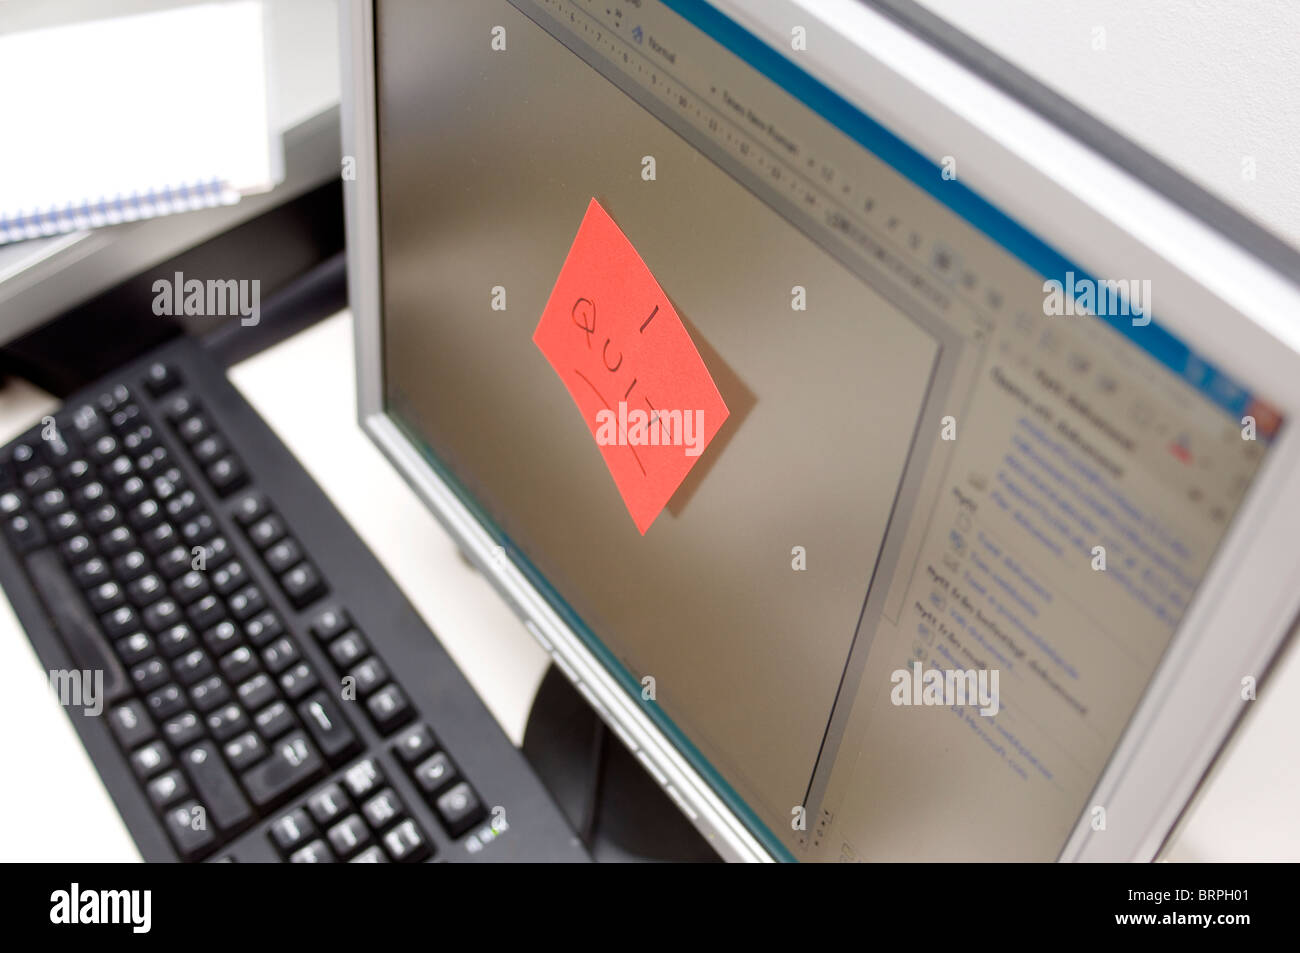 I quit note on computer screen monitor - Stock Image